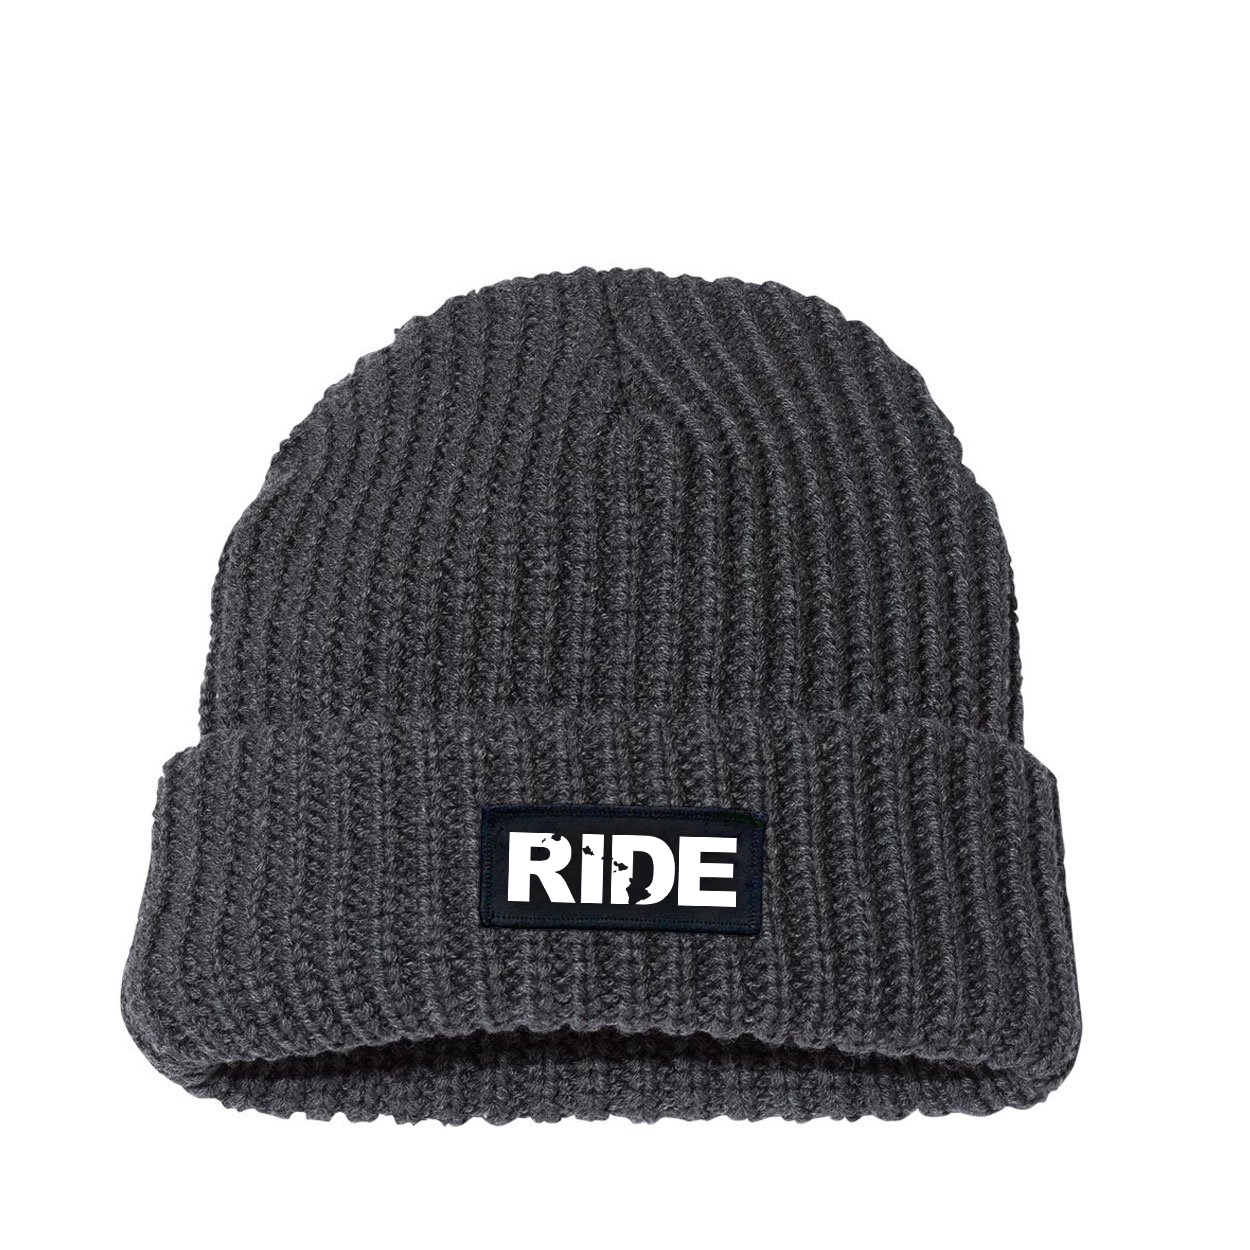 Ride Hawaii Night Out Woven Patch Roll Up Jumbo Chunky Knit Beanie Charcoal (White Logo)